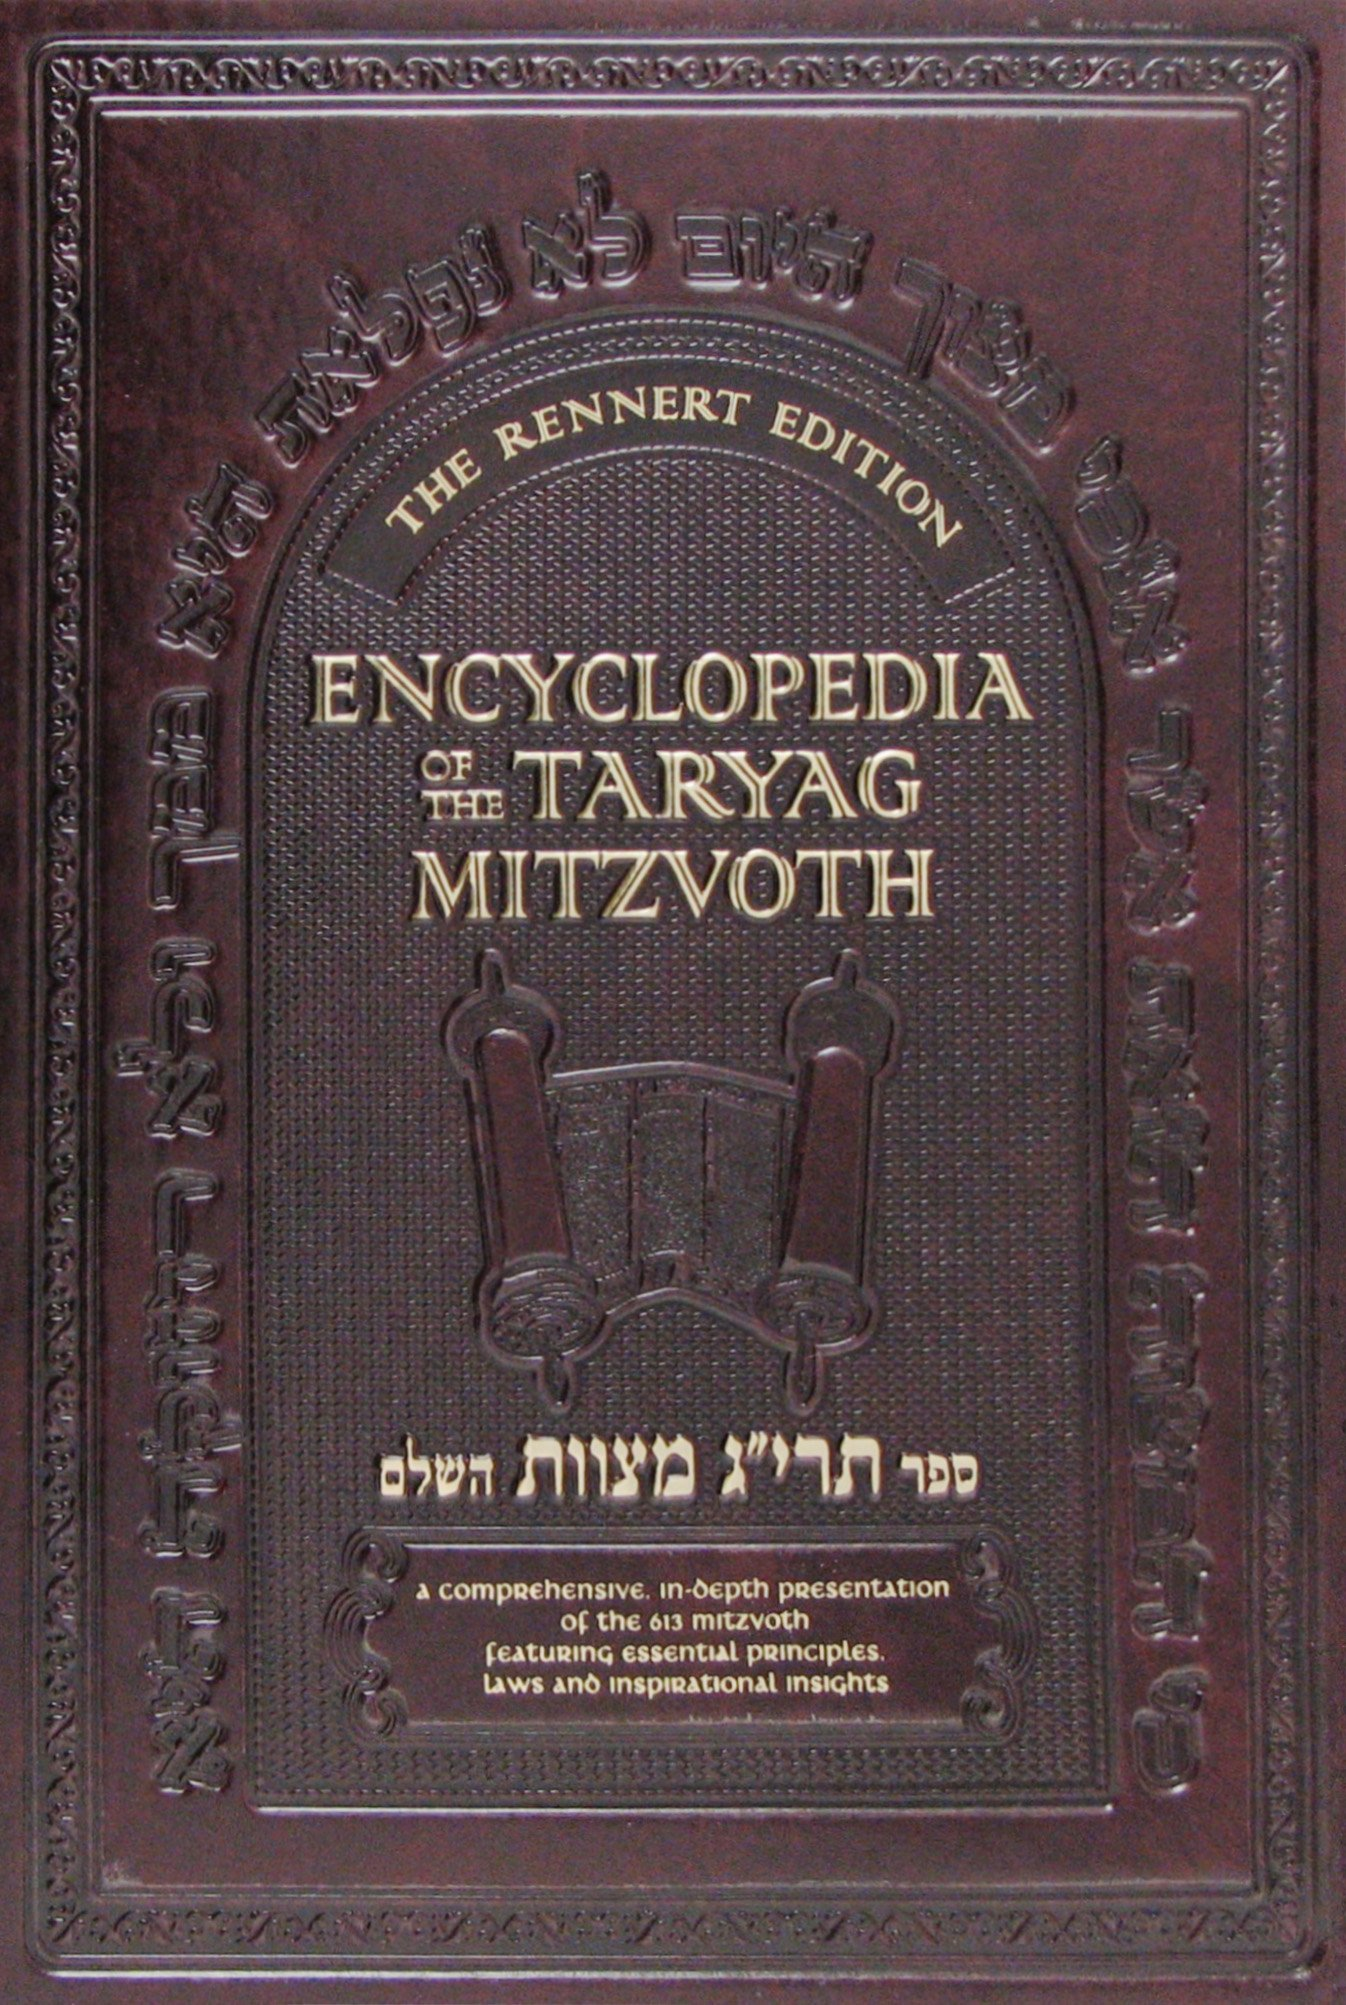 The Encyclopedia of the Taryag Mitzvoth: Vol. 3; Mitzvoth 39-71 ebook